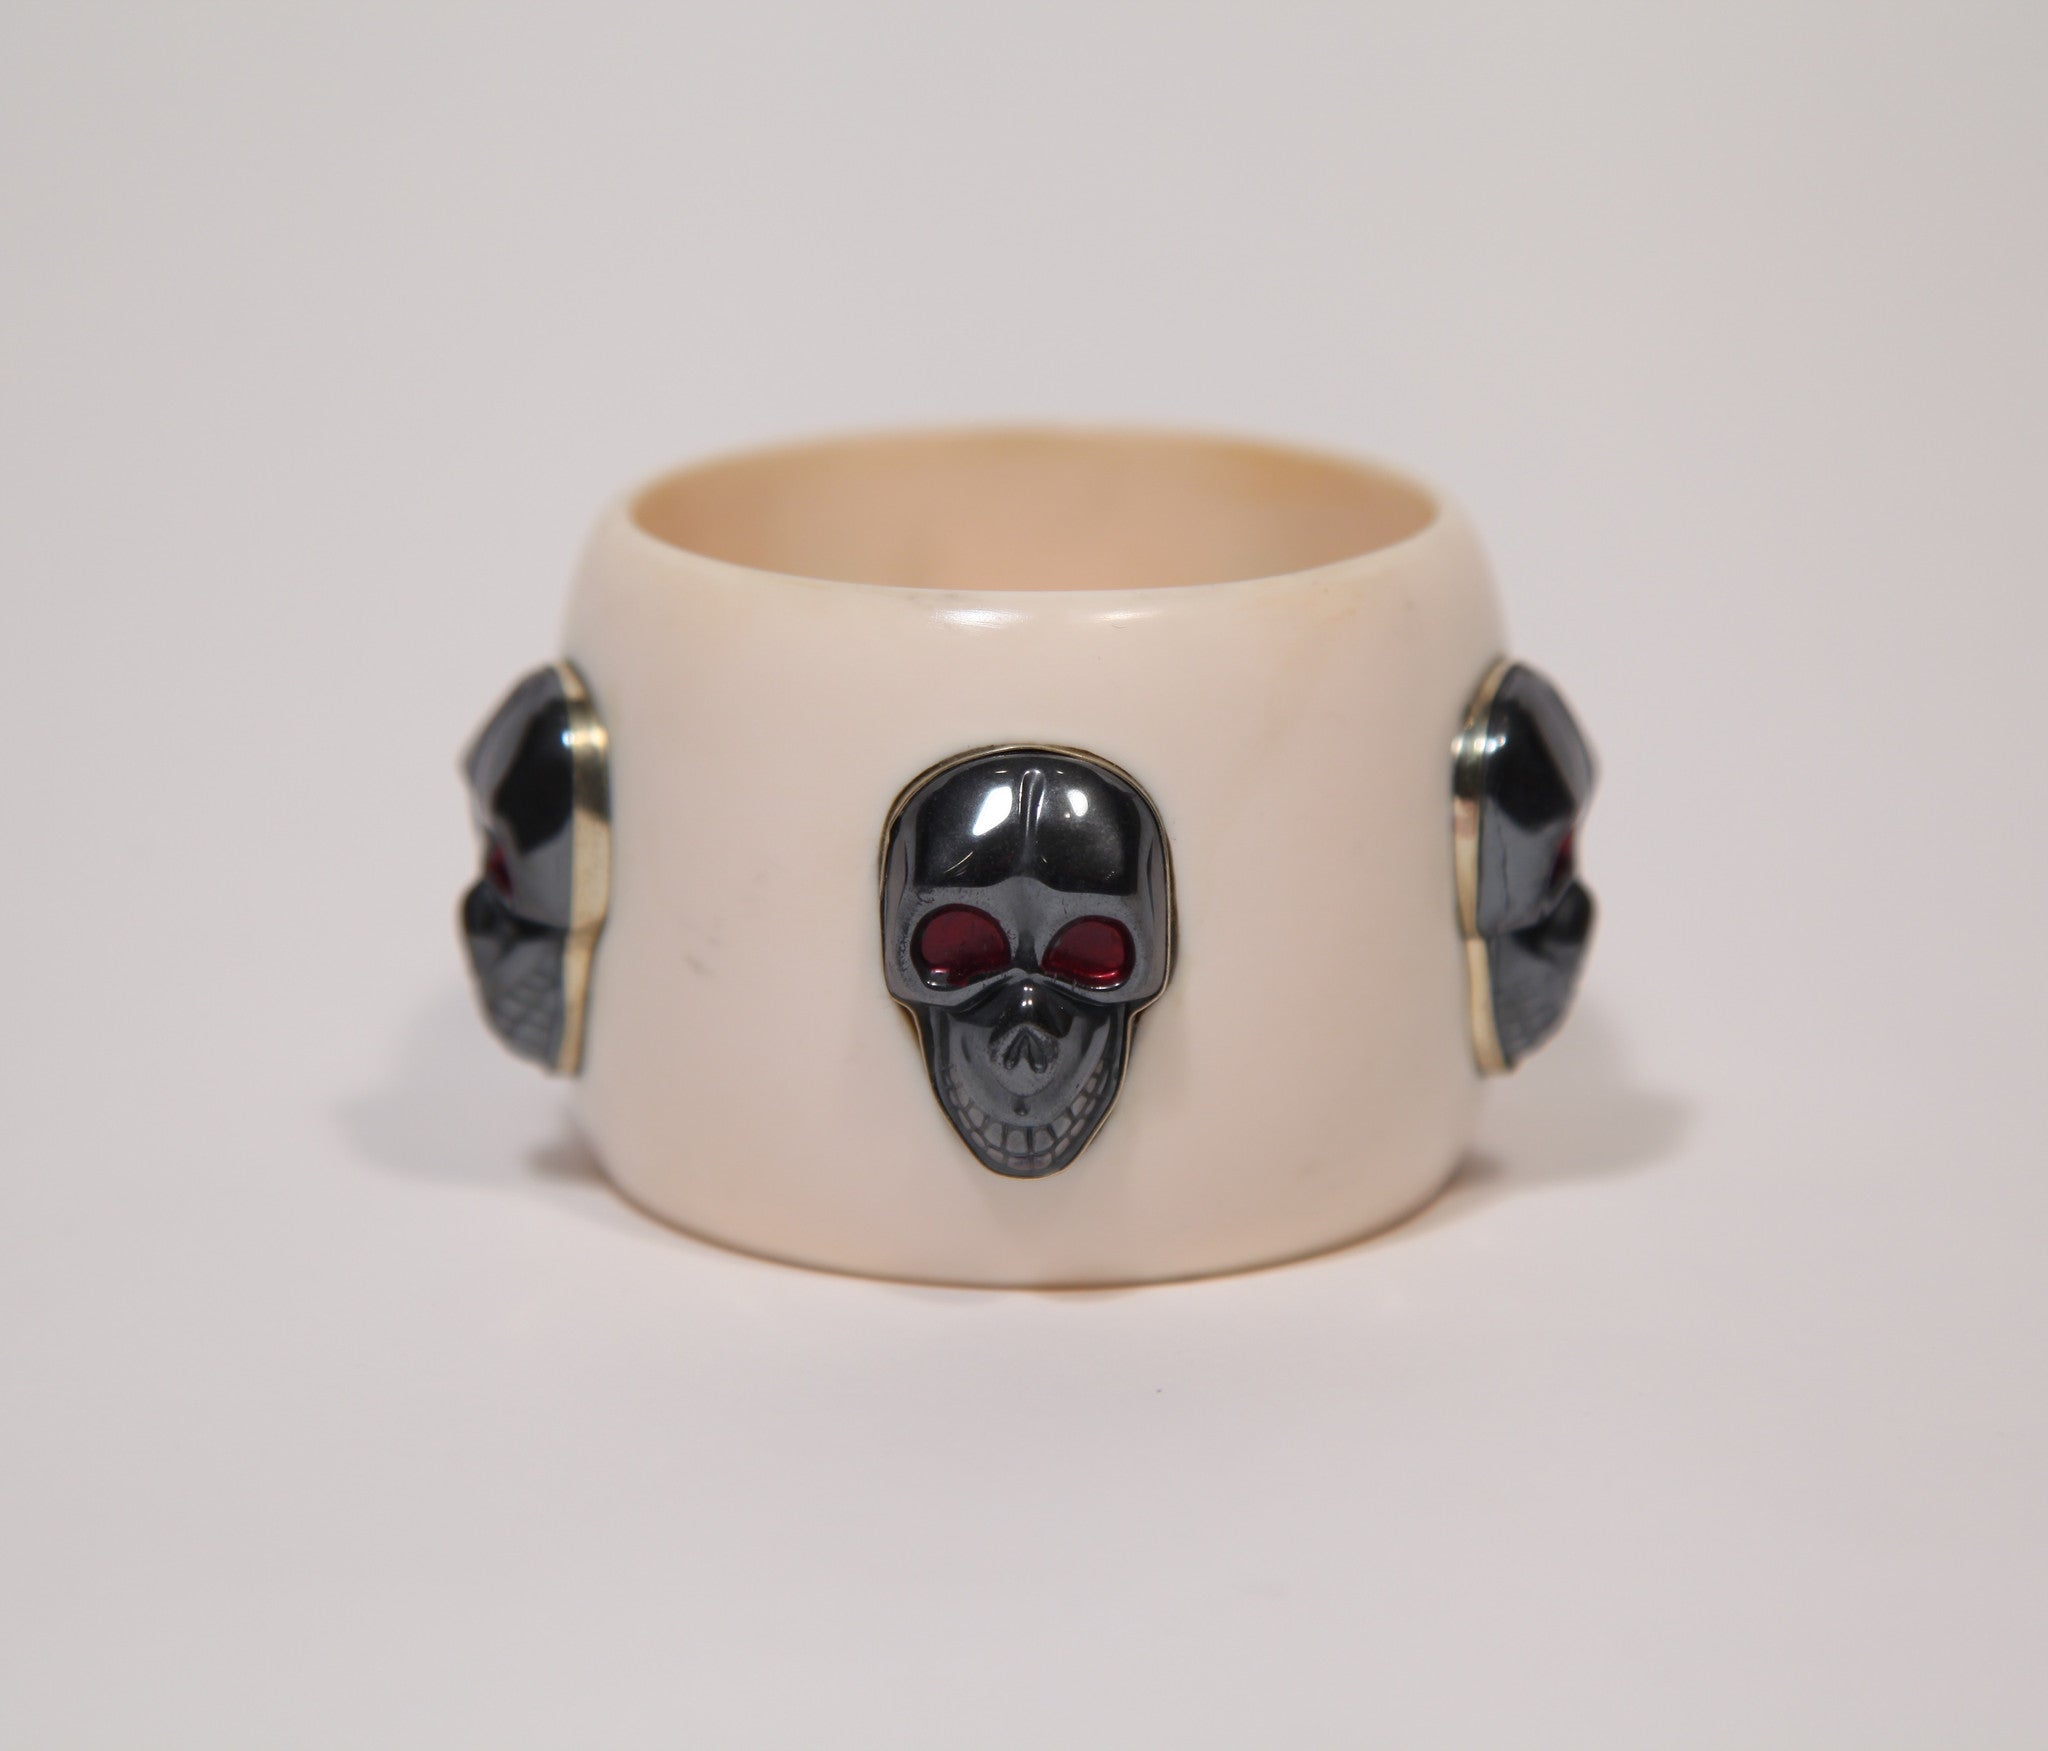 Bangle (Cream) with dark silver colored skulls - Inspired Luxe